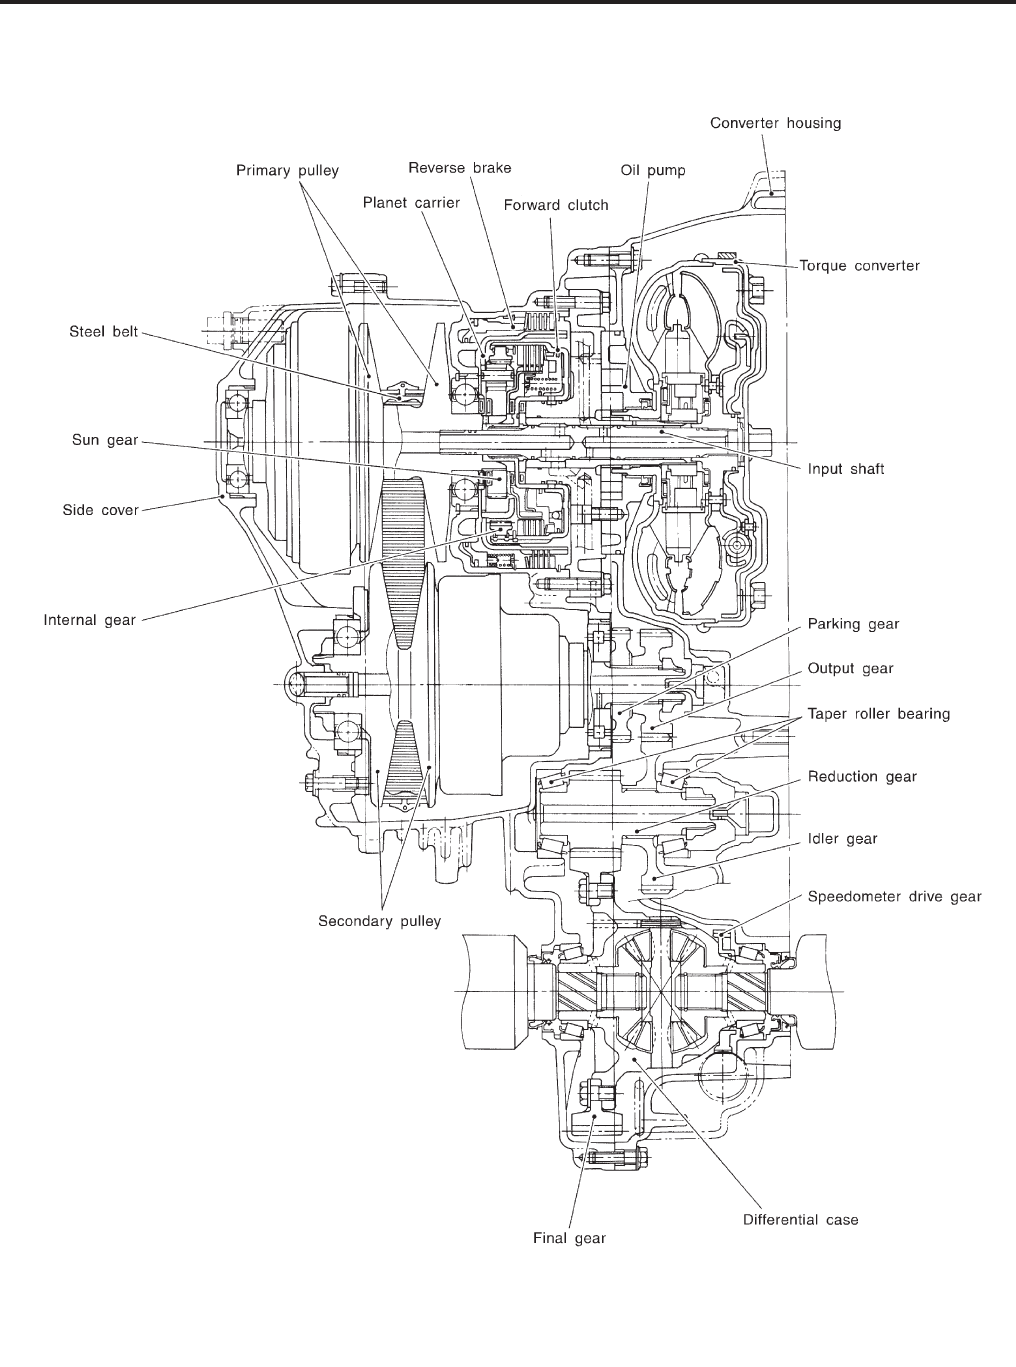 Nissan Almera Workshop Manual 2002 (1) PDF